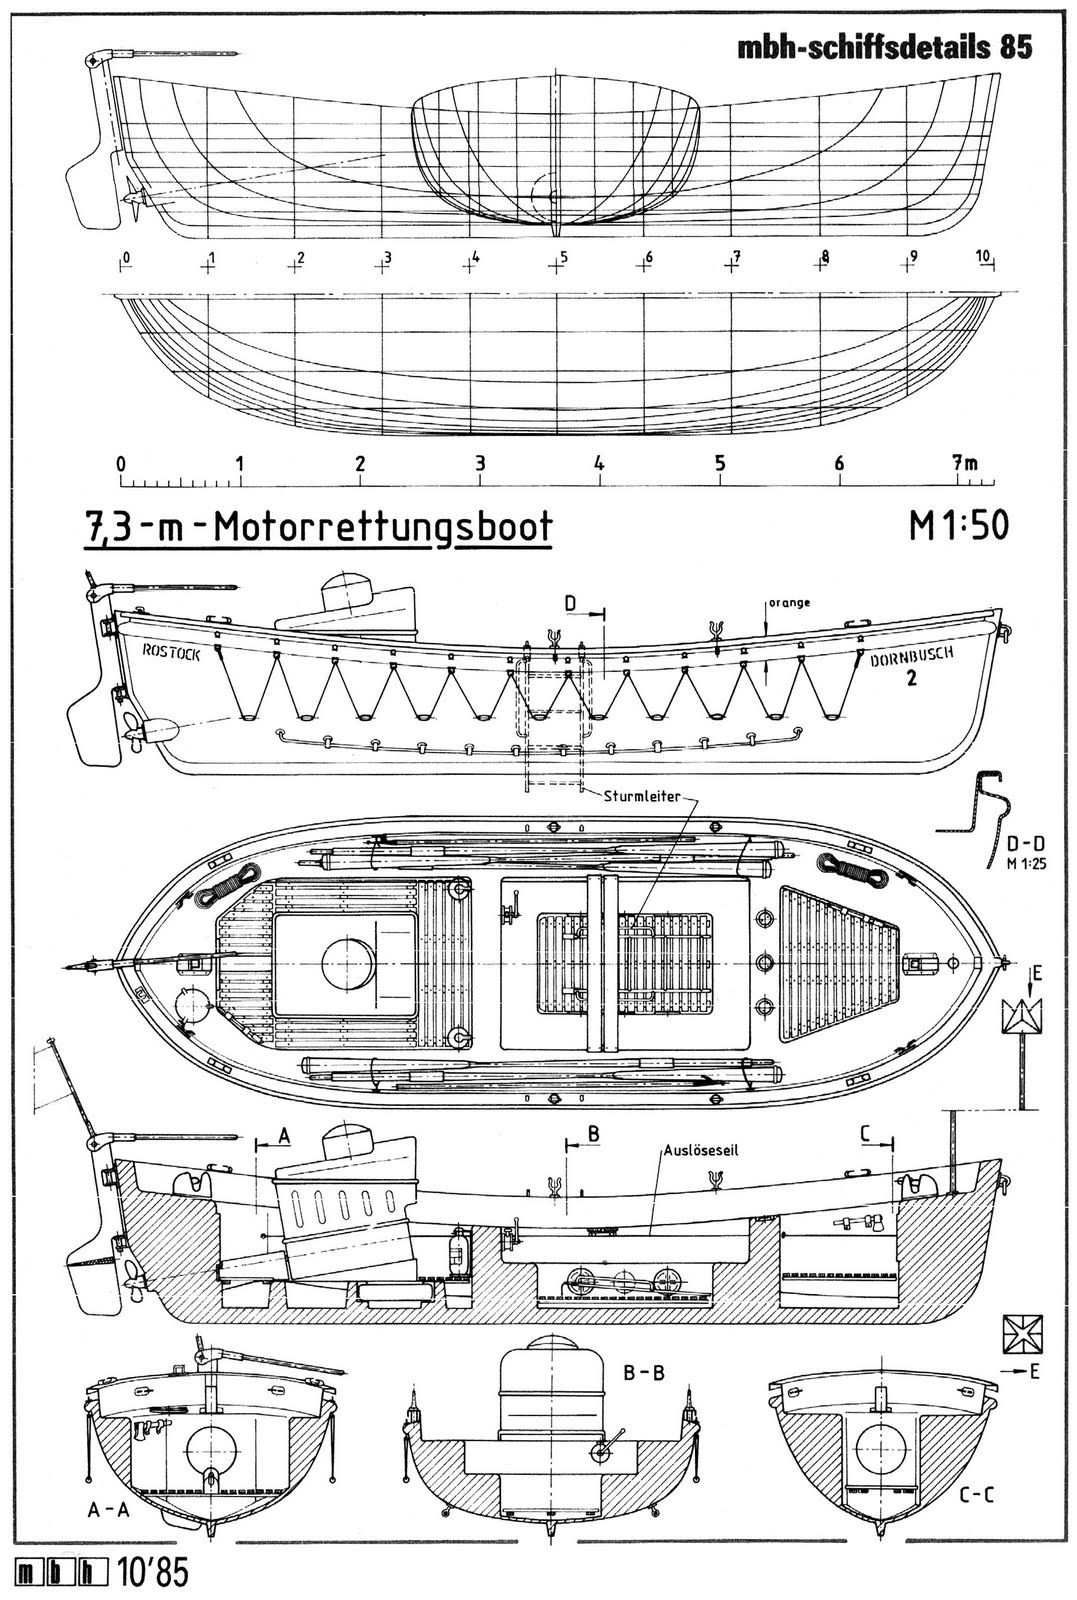 Best 25+ Model boat plans ideas on Pinterest | Rc model boats, Sailboat plans and Model ship ...